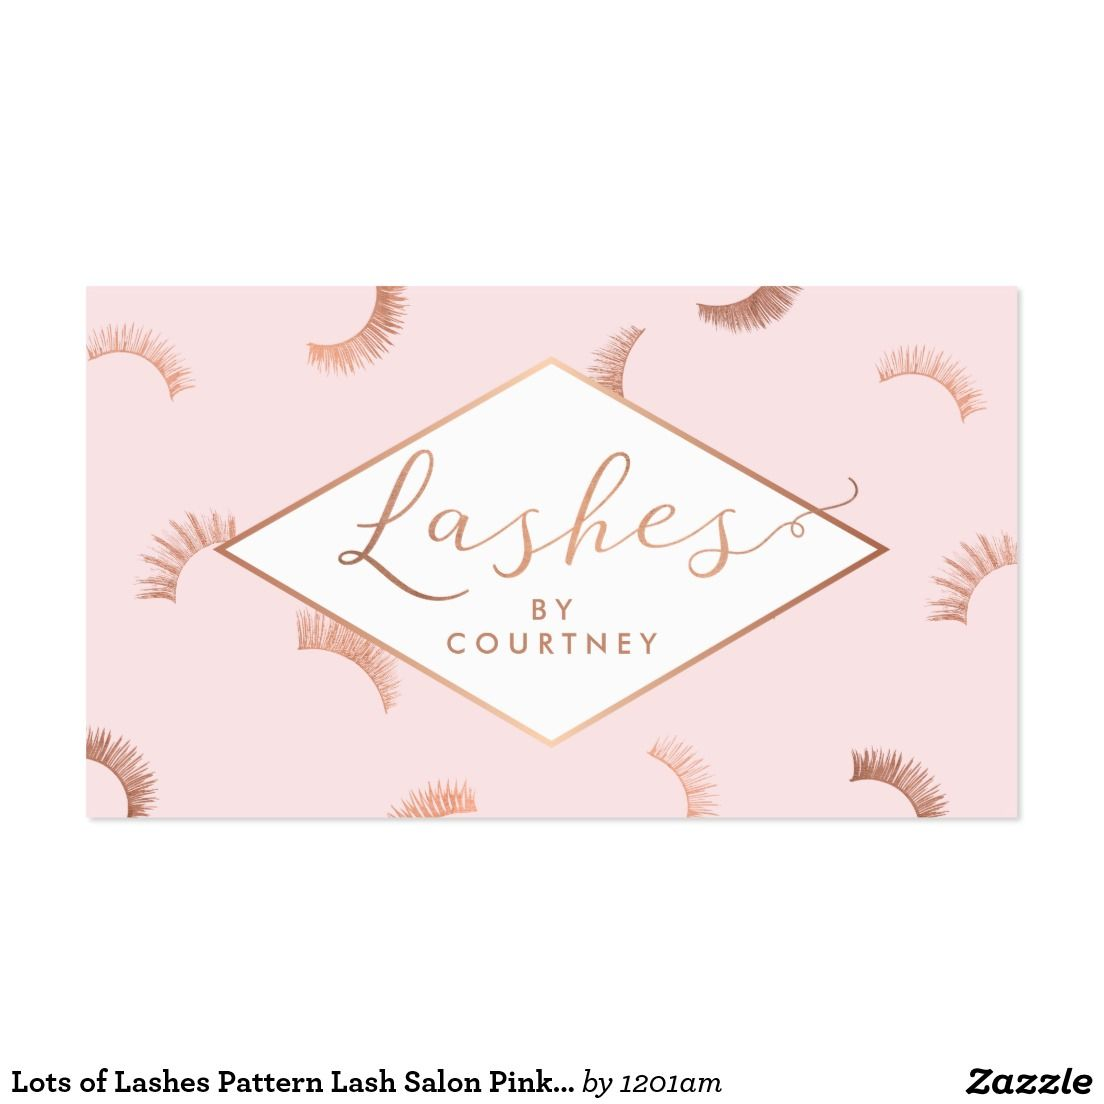 Lots of Lashes Pattern Lash Salon Pink/Rose Gold Business Card ...